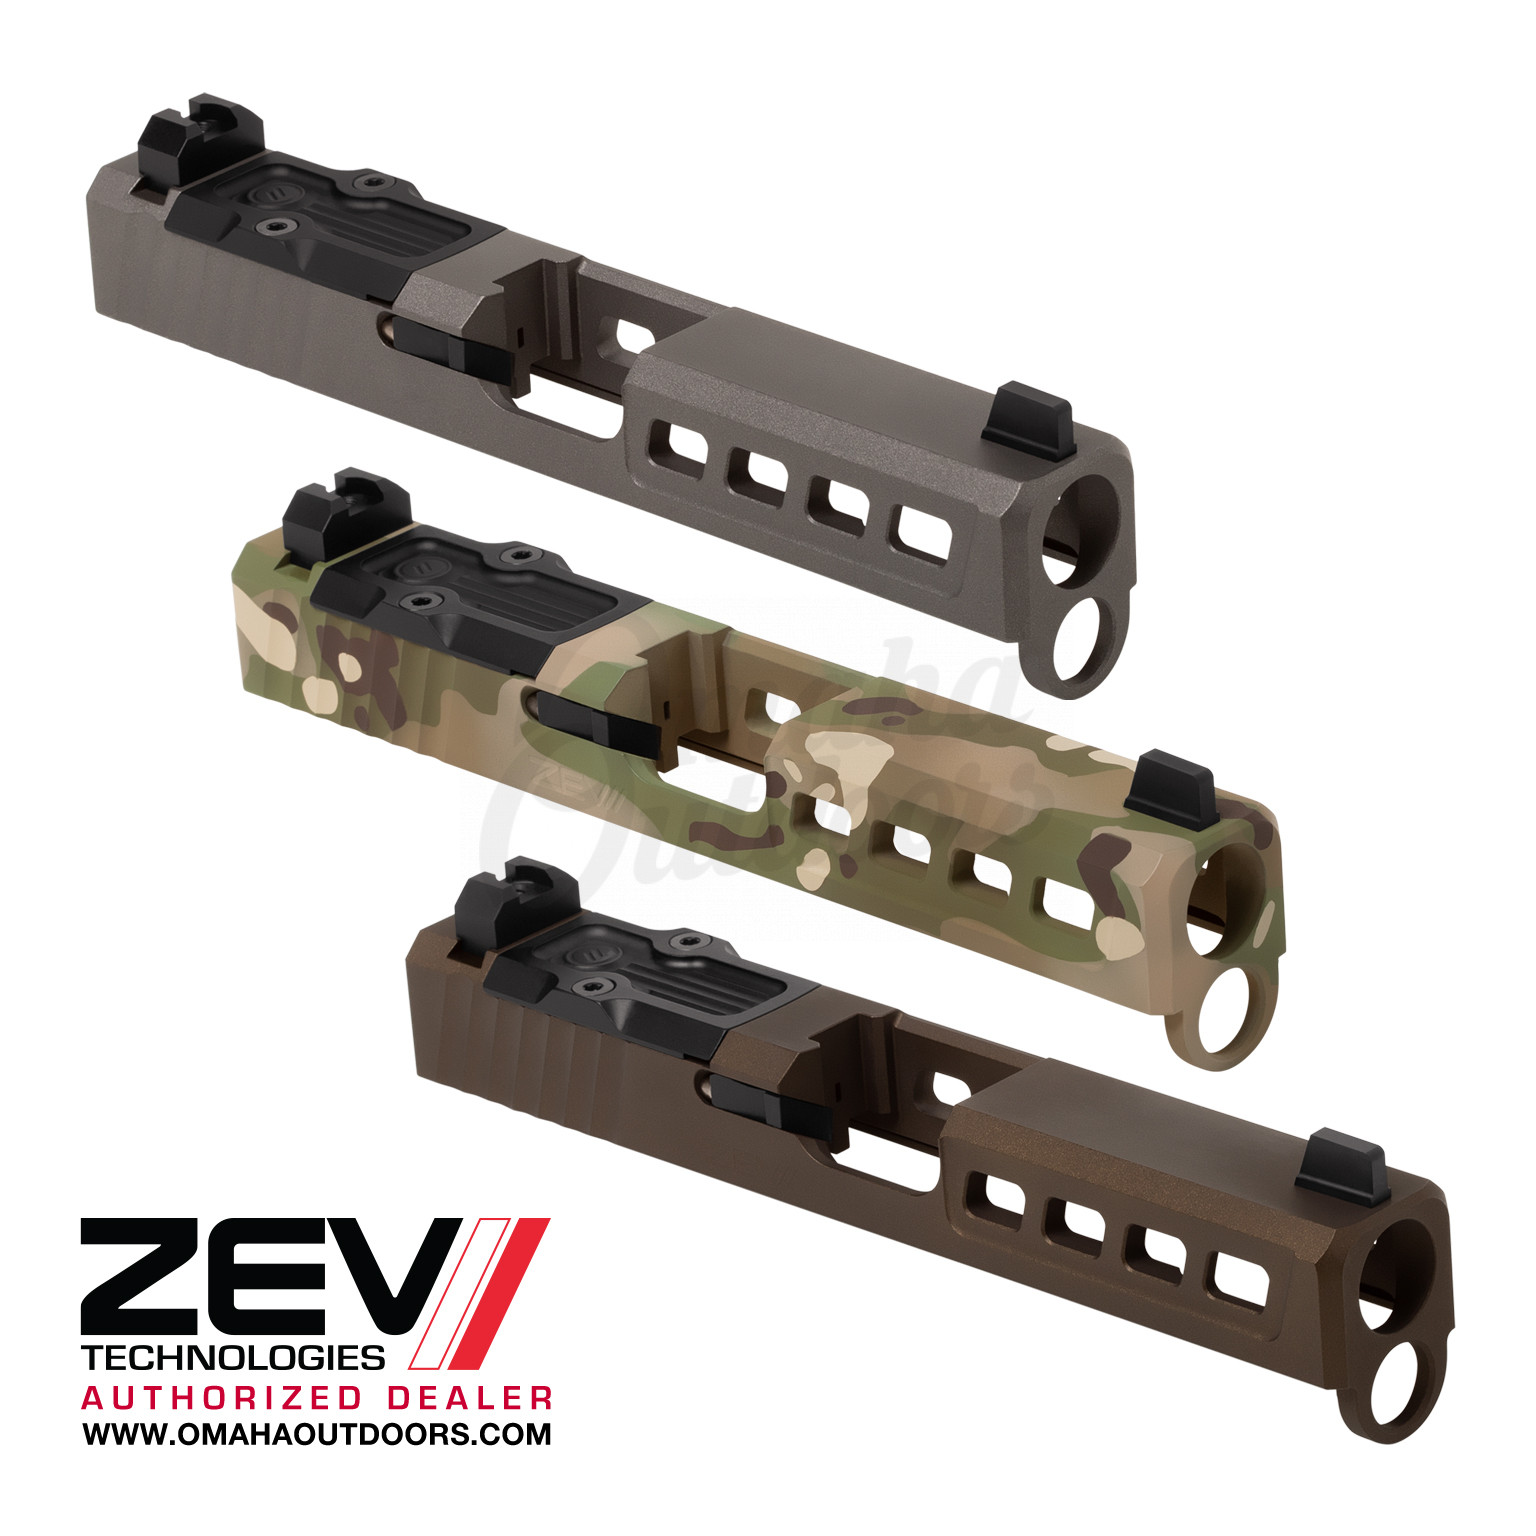 ZEV Tech Dragonfly Complete Slide Kit Glock 19 Gen 4 Steel  SLD KIT-Z19-4G-DFLY-RMR-CW ABS